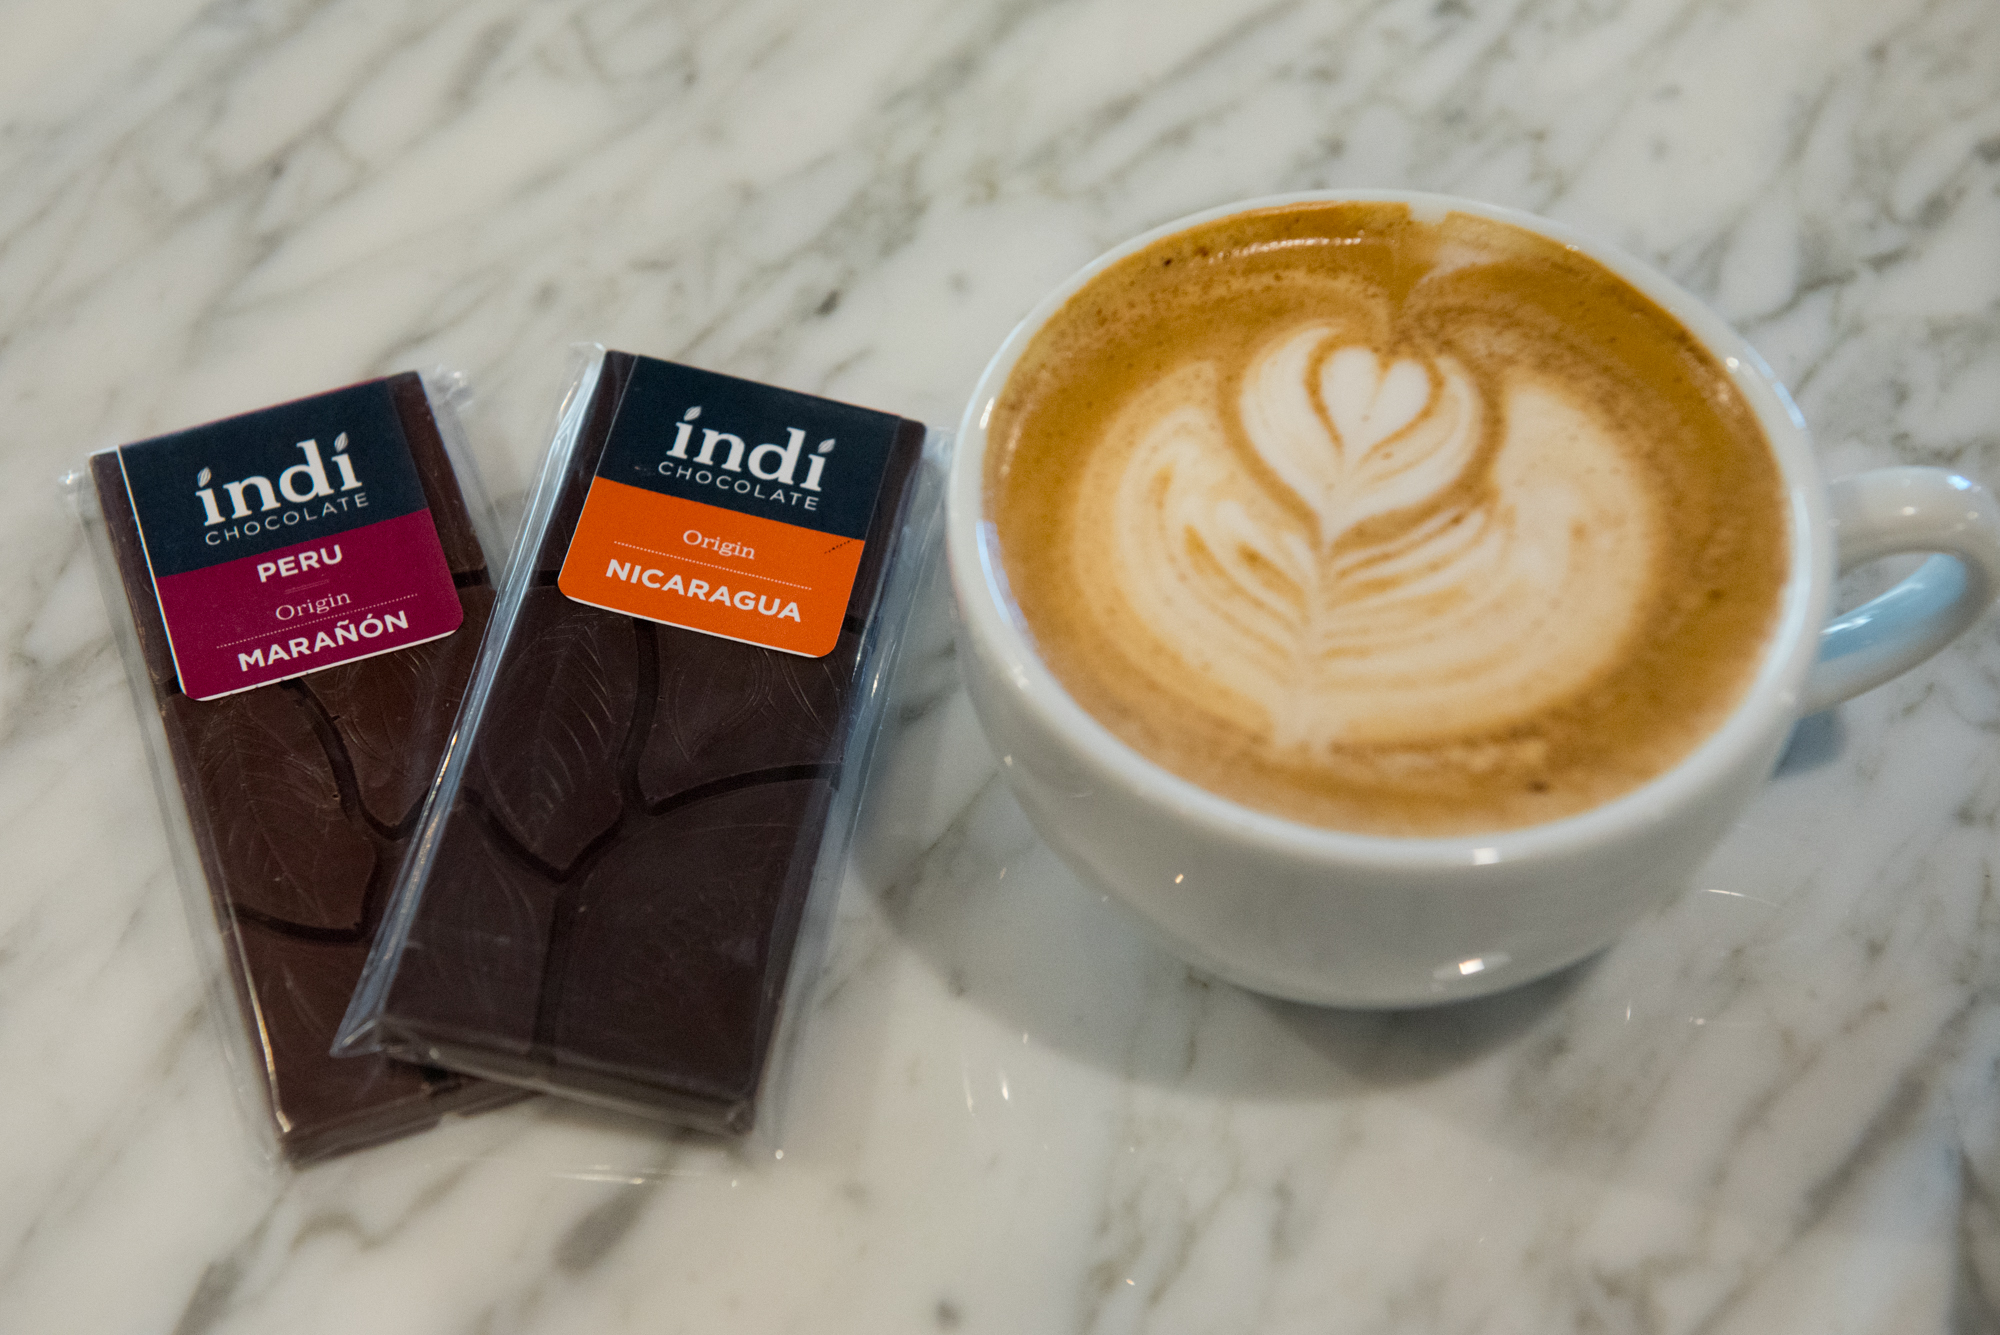 Pike Place Market Chocolate Maker Expands With New Cafe and ...